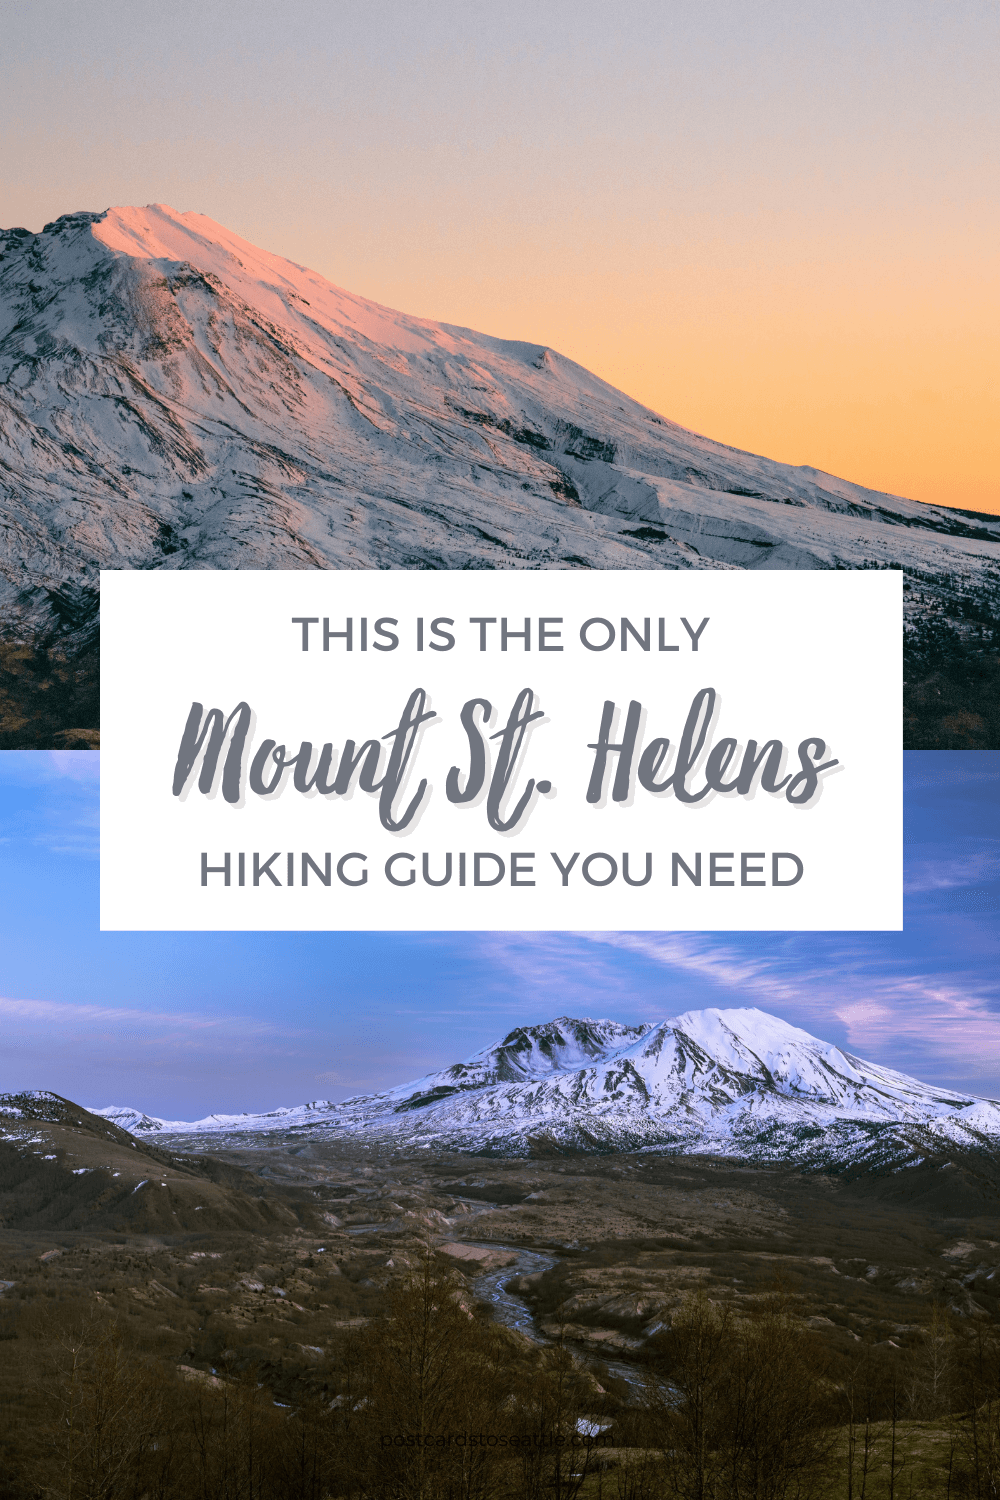 How to Climb Mt. St. Helens - Everything You Need to Know